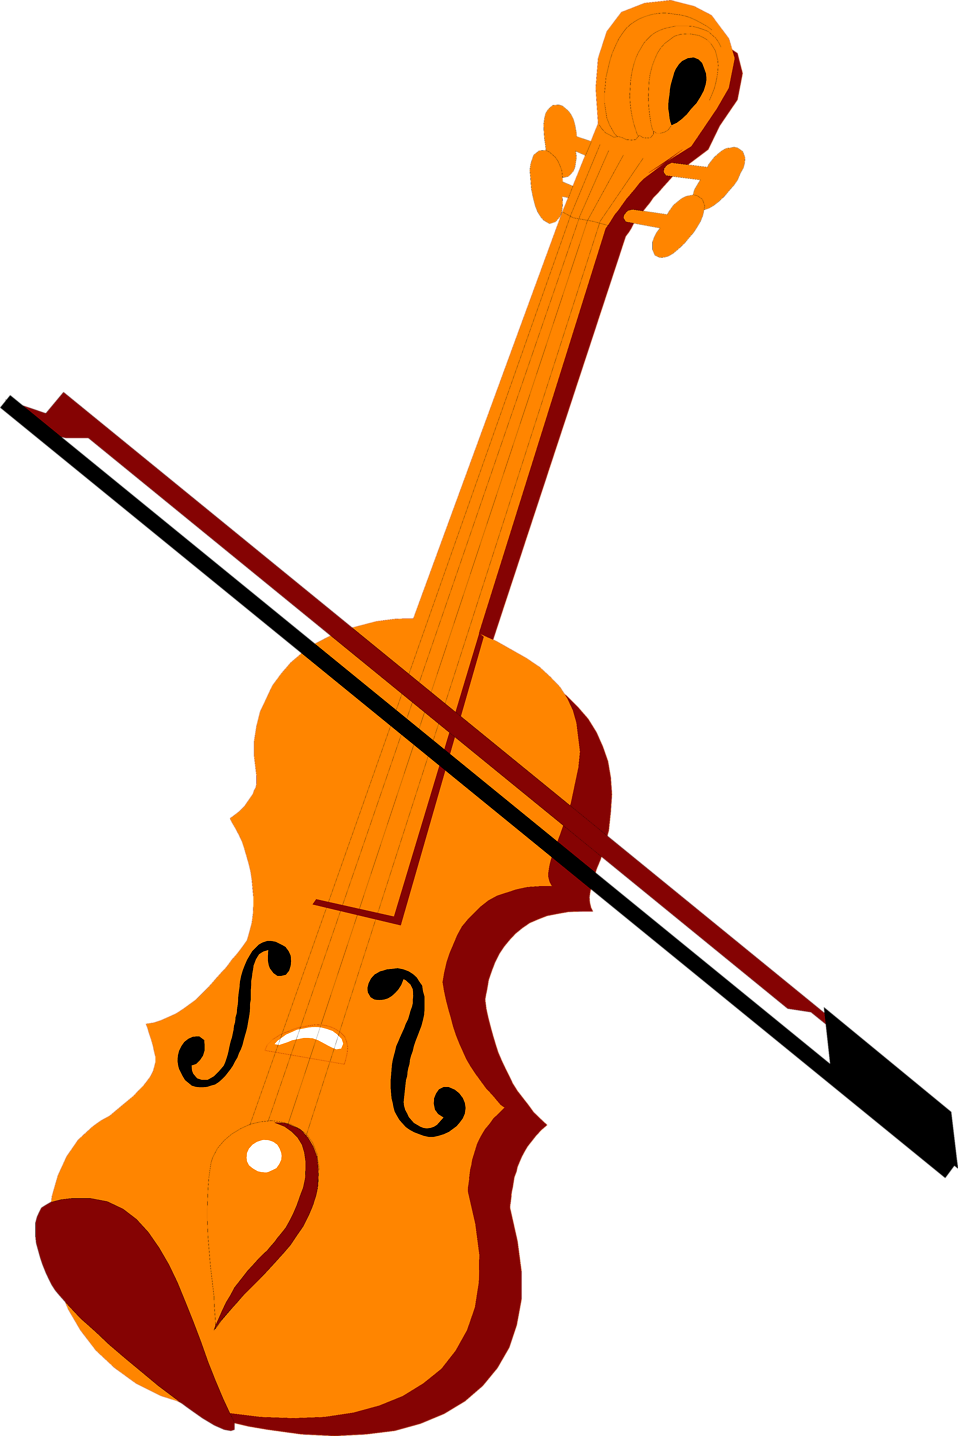 Illustration of a violin and bow : Free Stock Photo